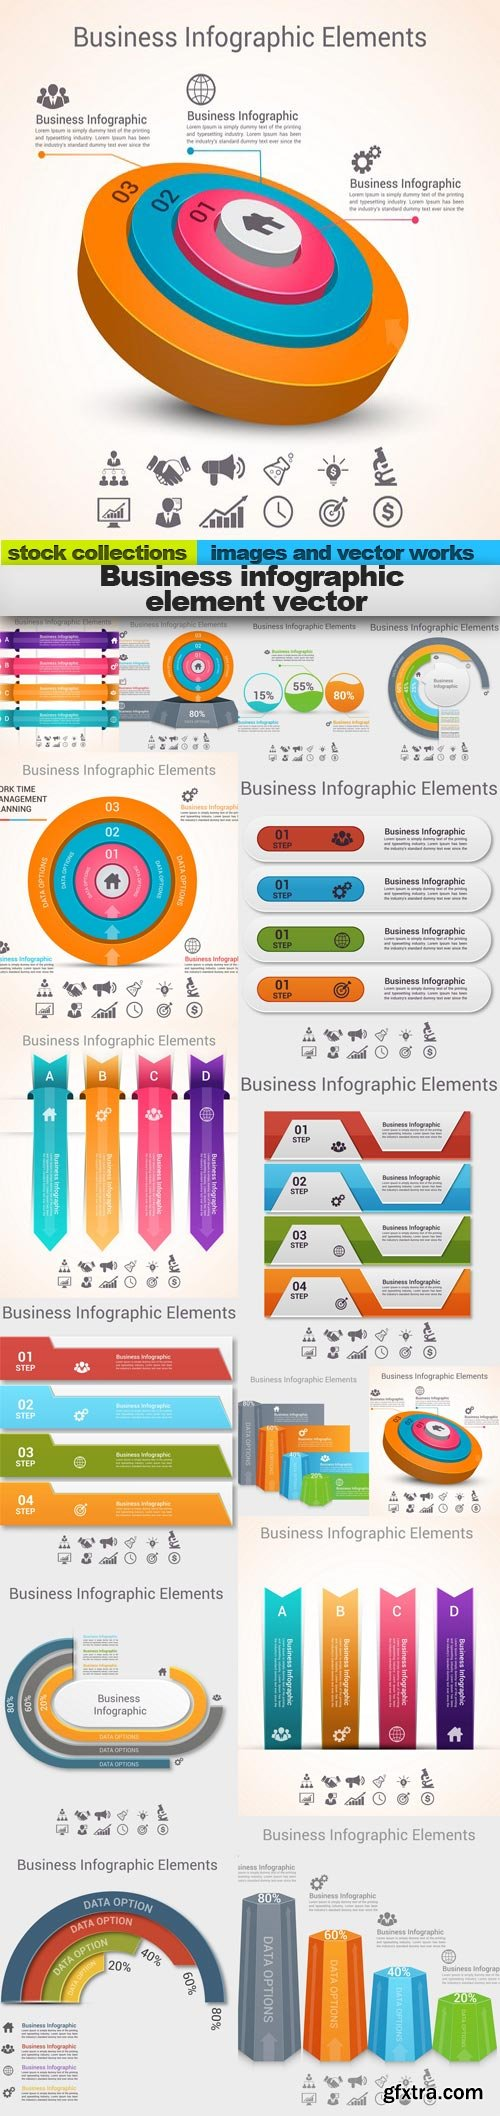 Business infographic element vector, 15 x EPS